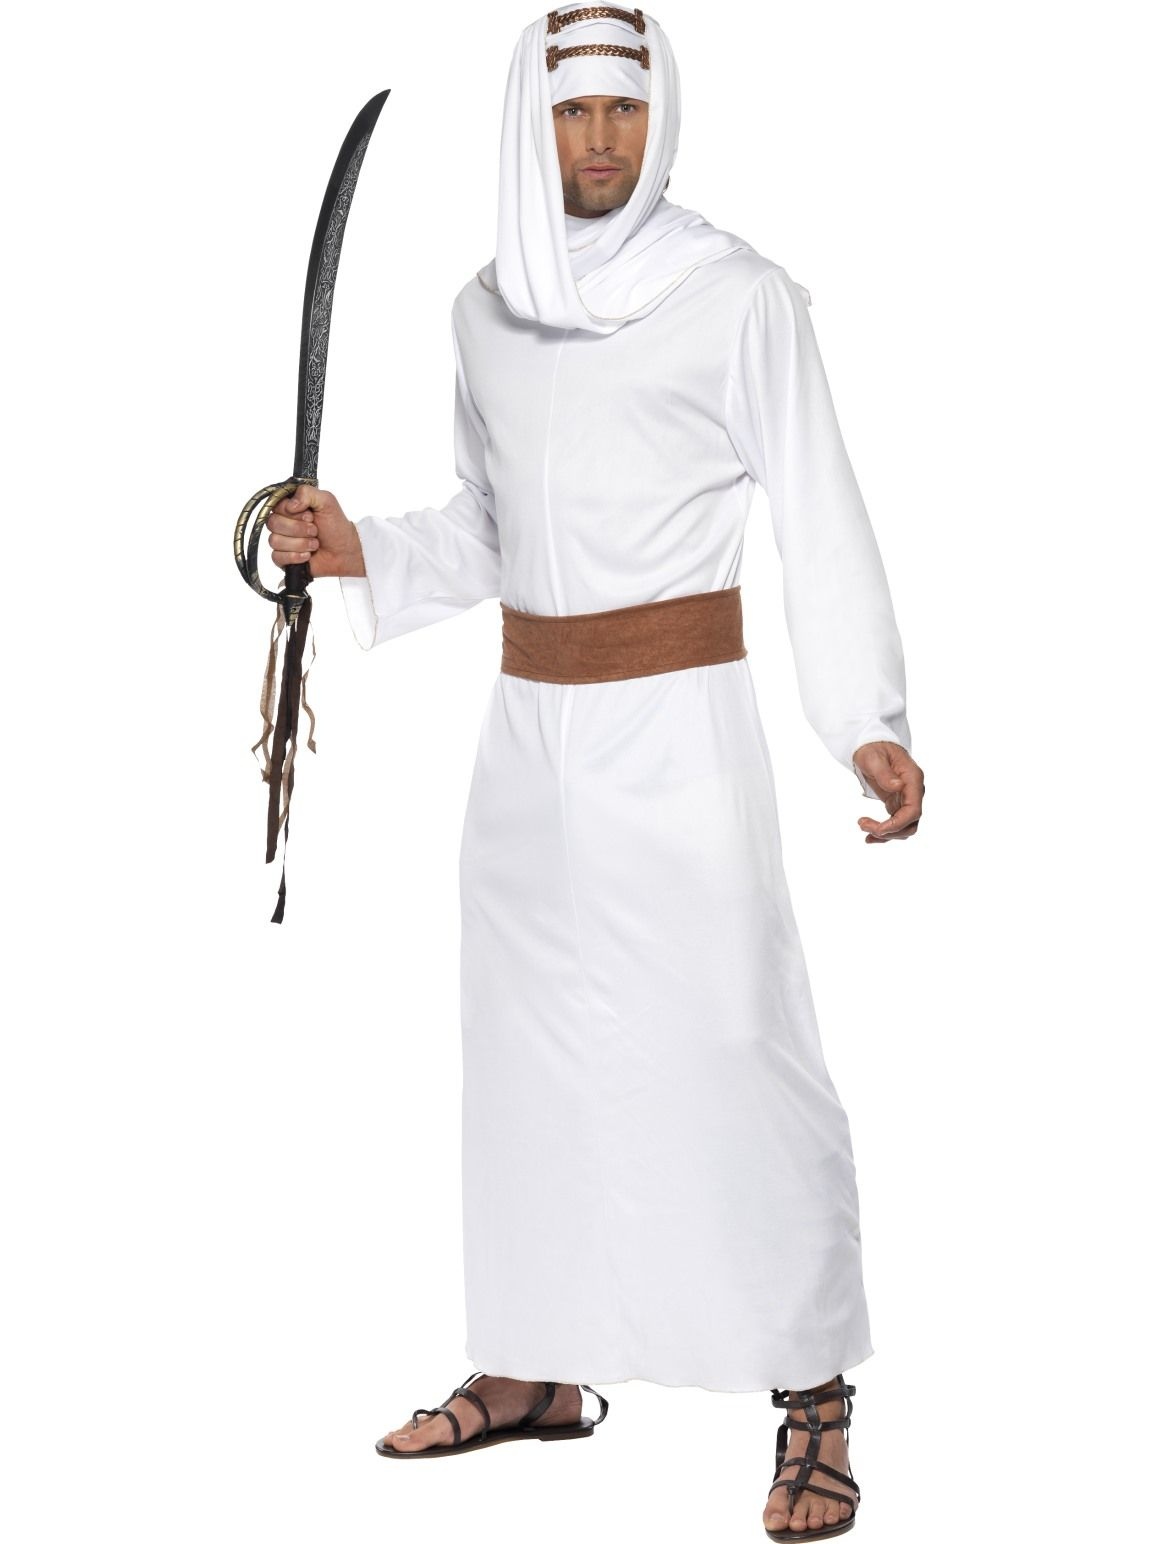 Lawrence of Arabia Costume - Buy Online Only